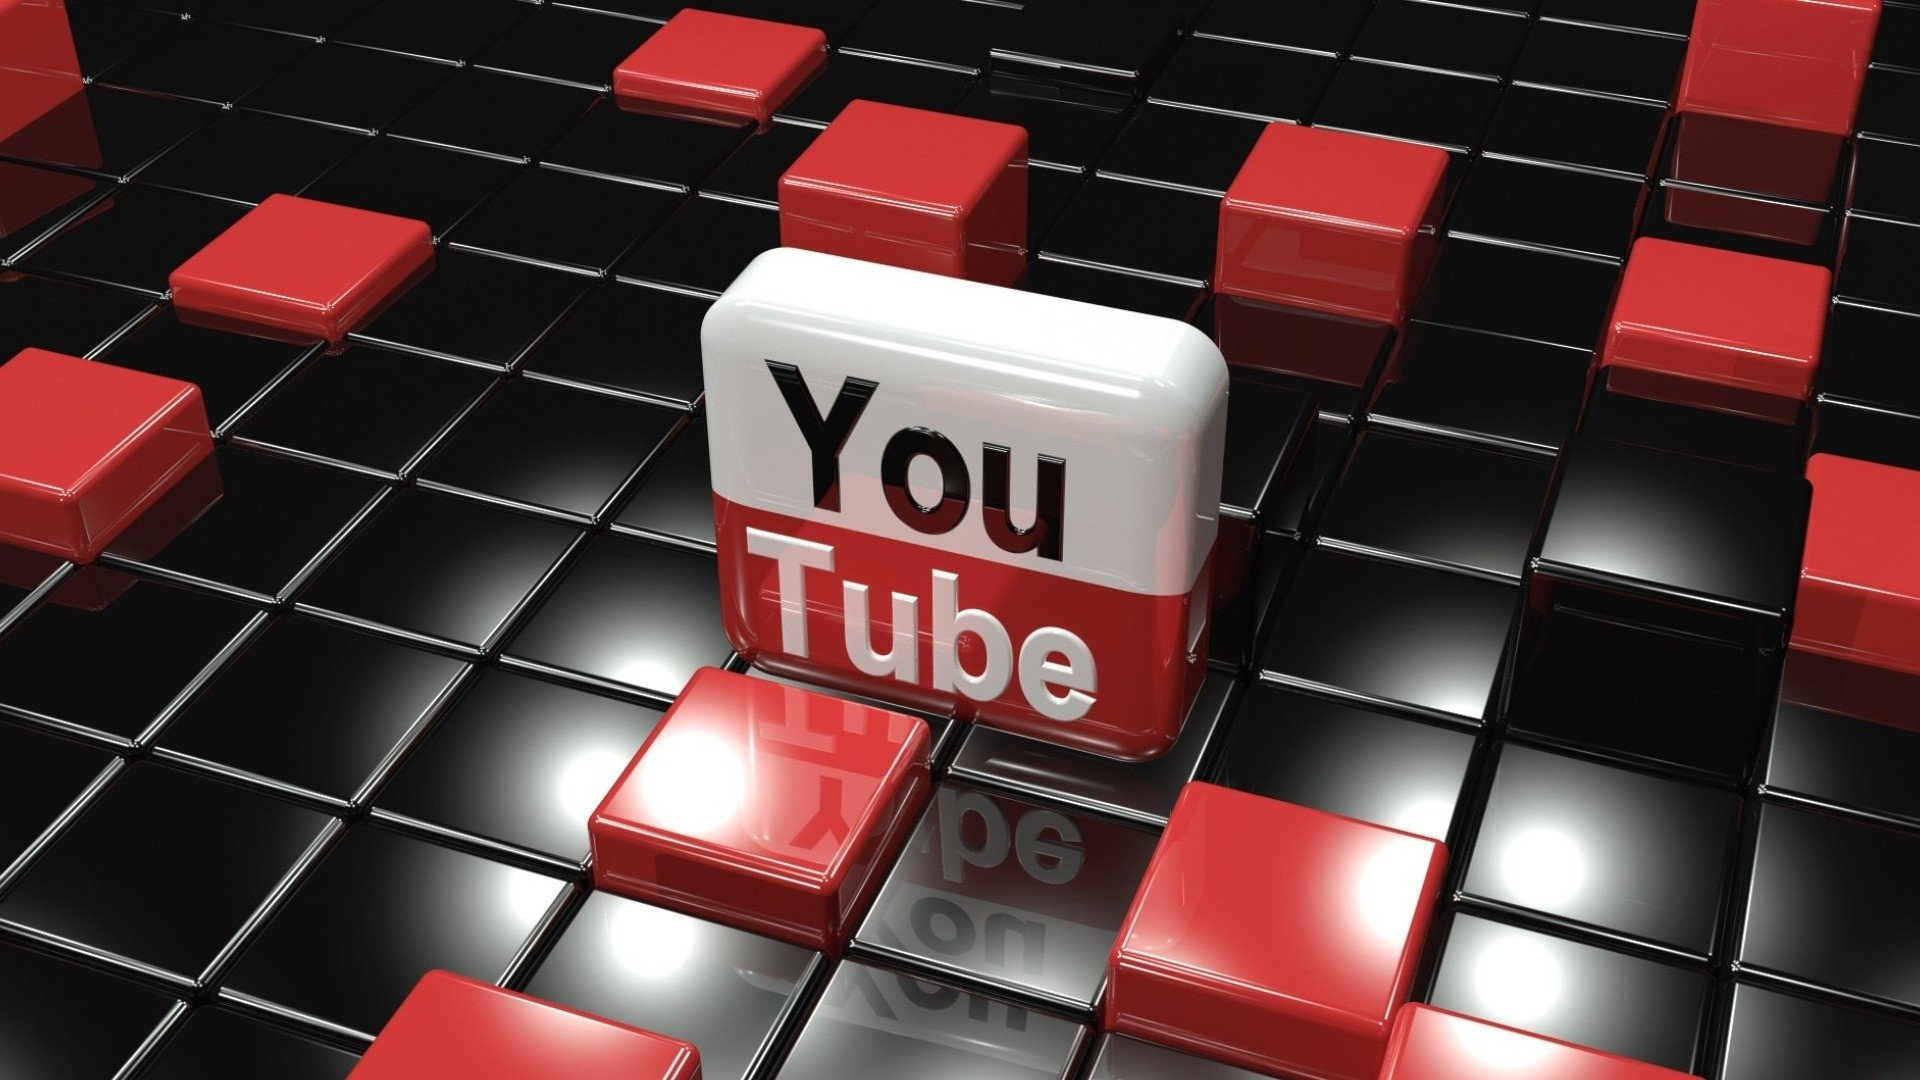 How to Download Video from YouTube for Free in 2021?